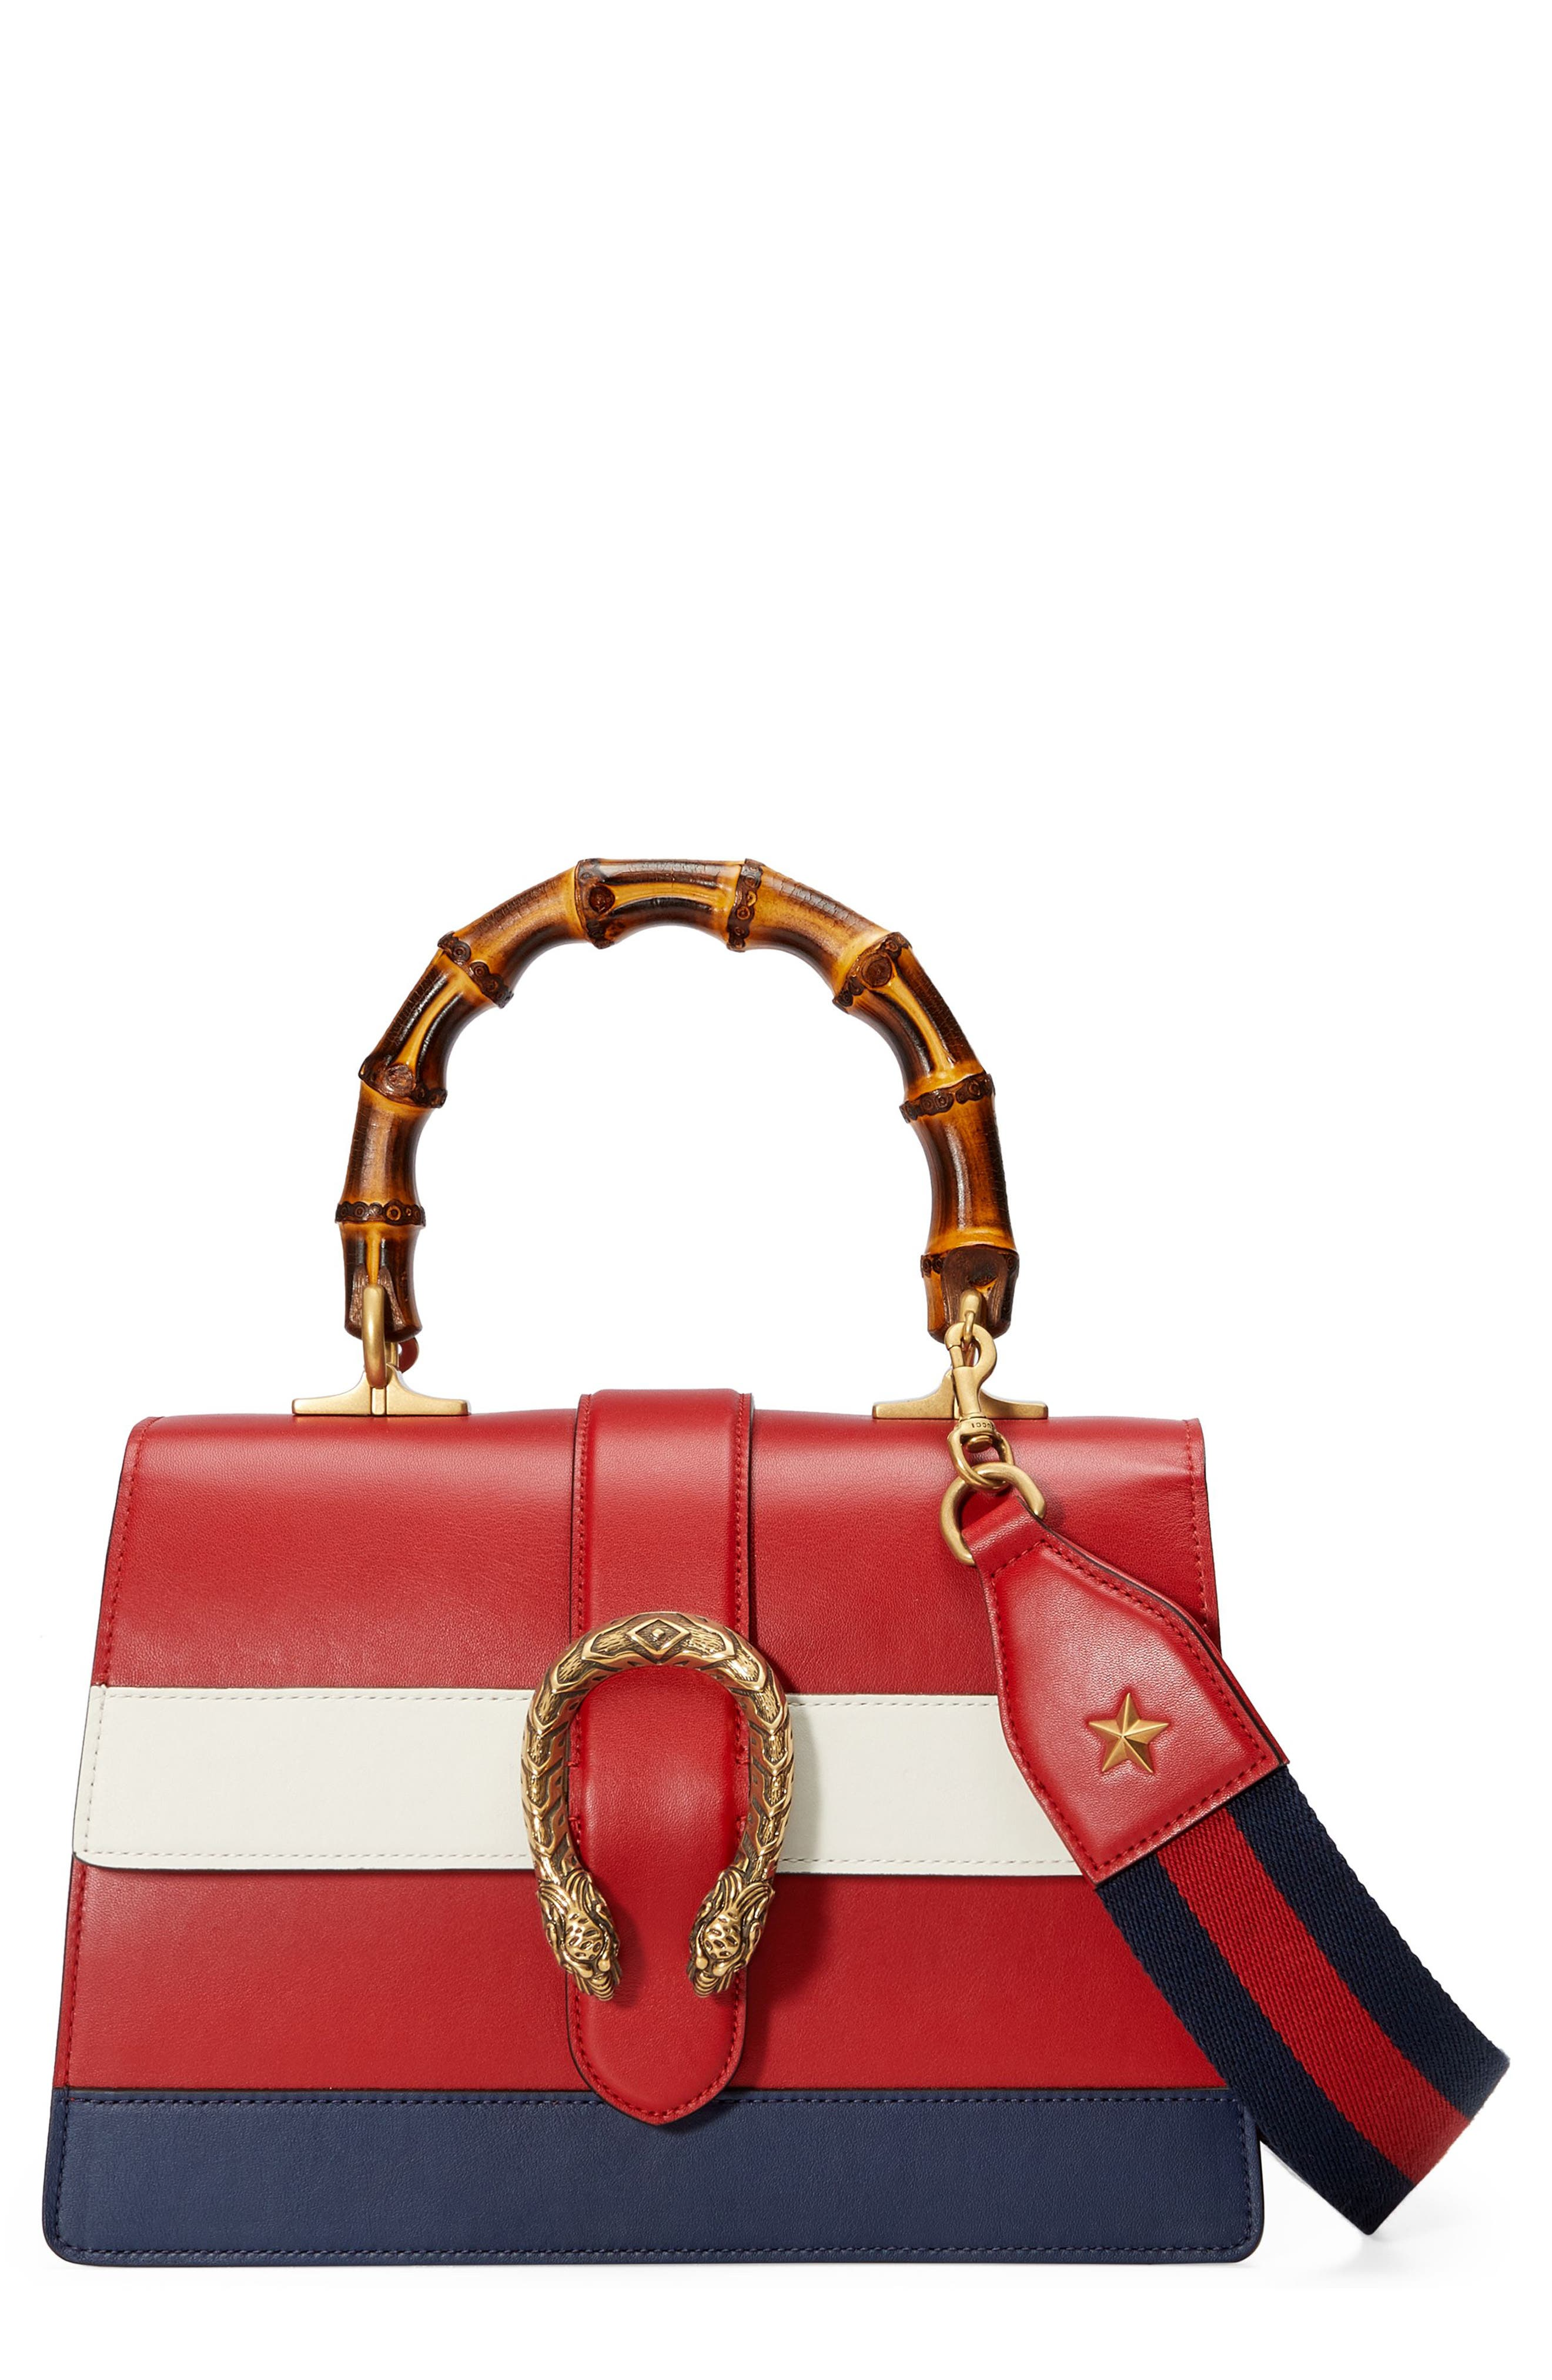 Small Dionysus Top Handle Leather Shoulder Bag,                         Main,                         color, Red/ White/ Blue